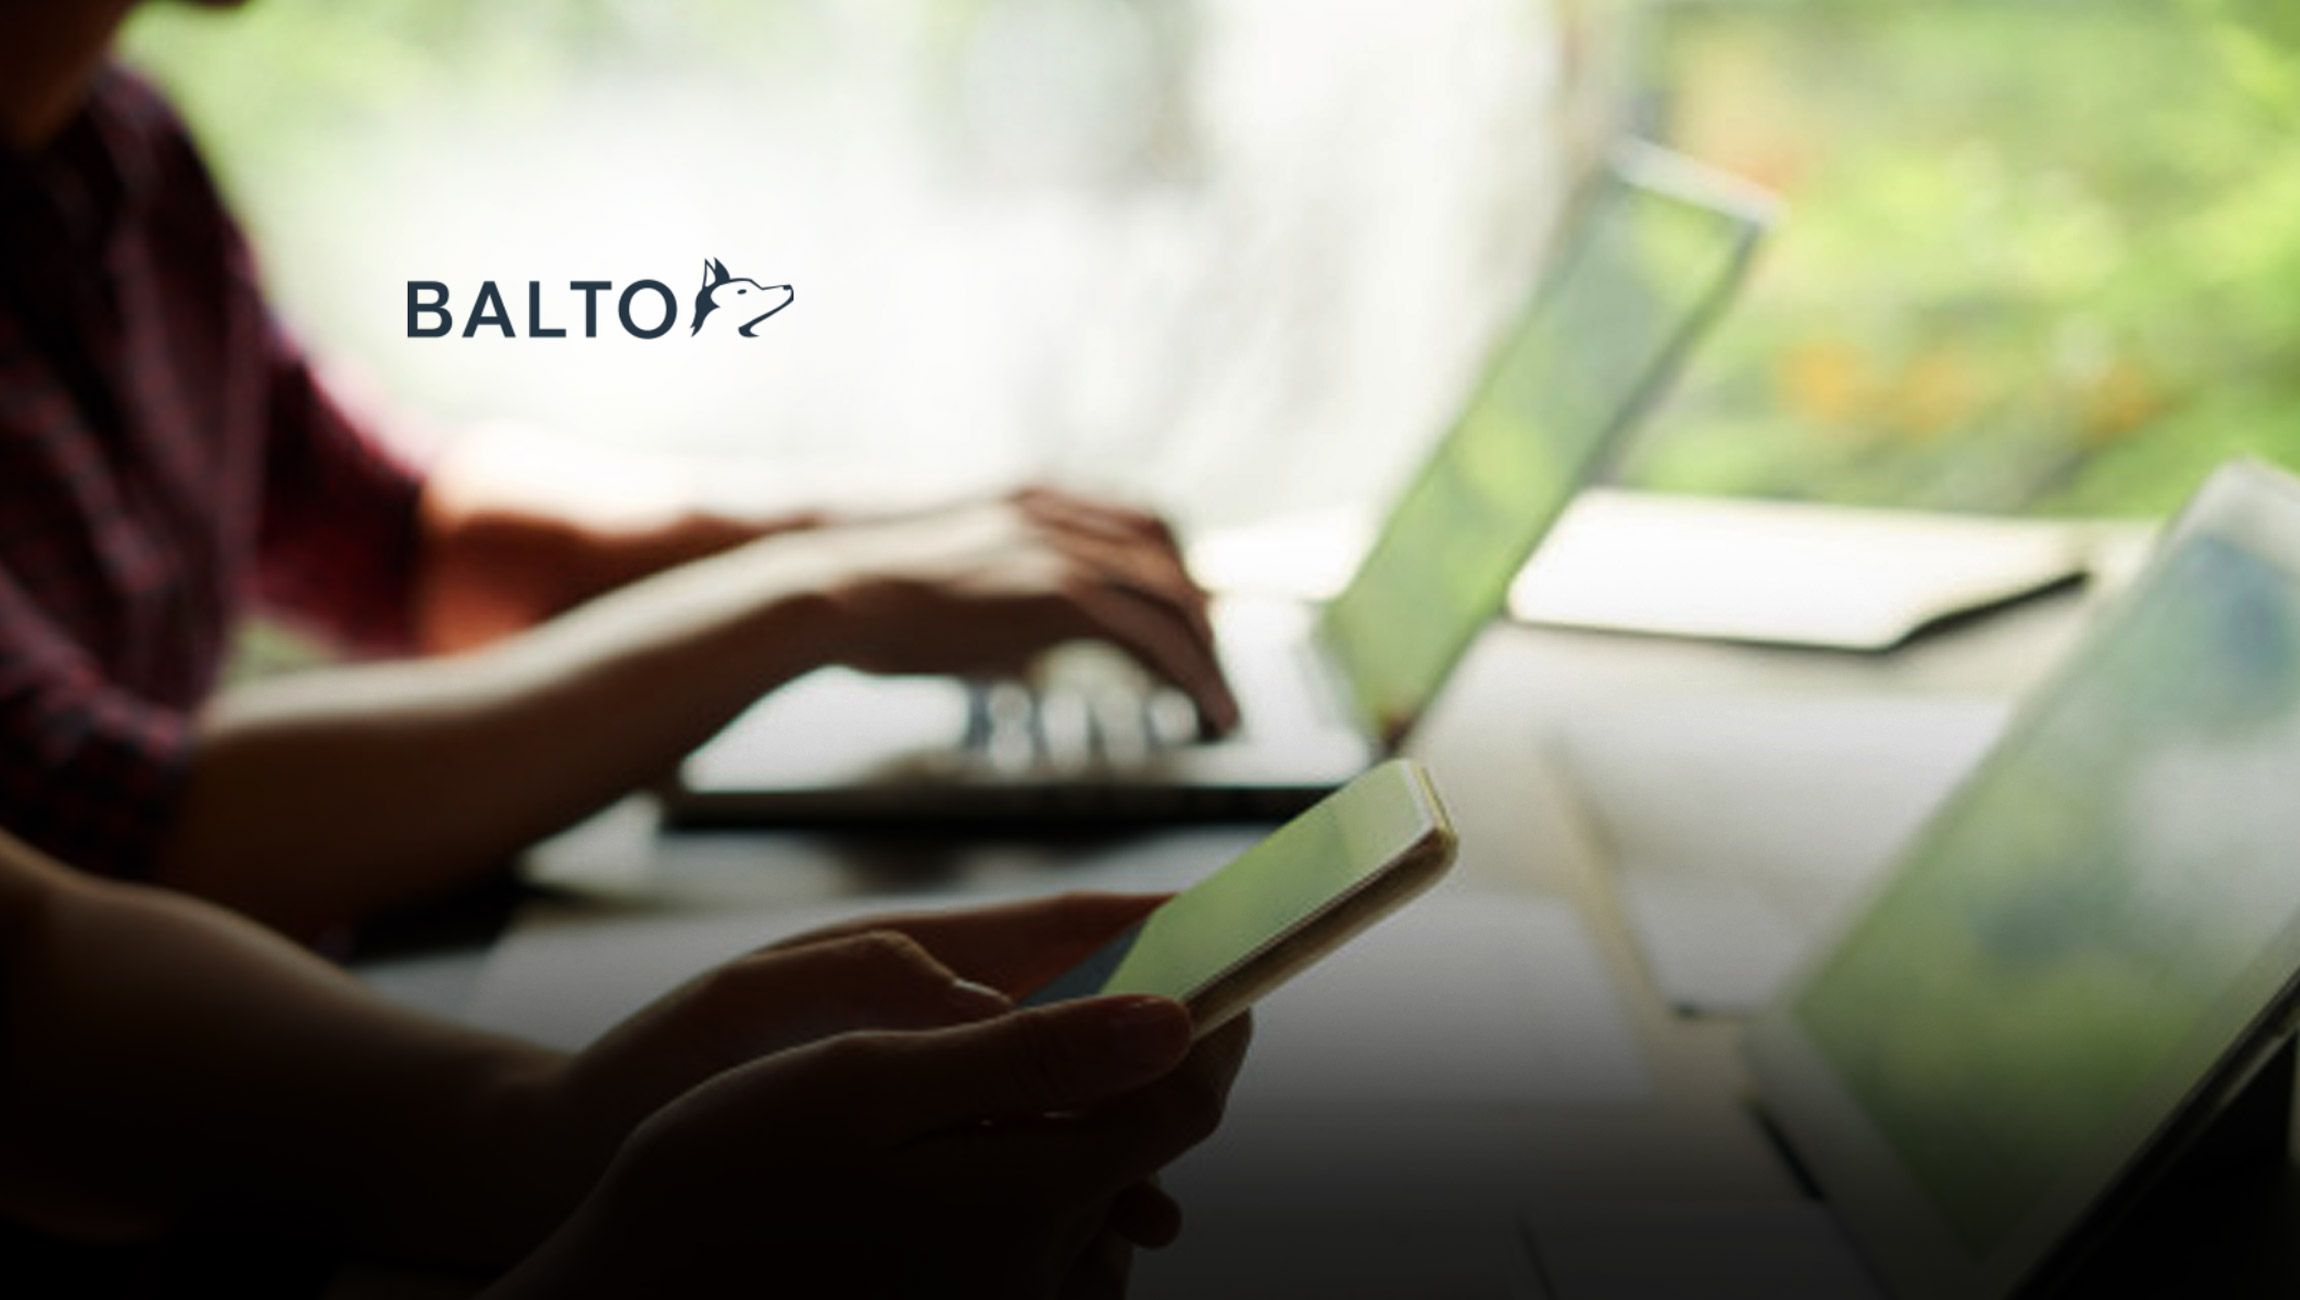 Human Error - Not Training - is #1 Cause of Contact Center Agent Mistakes, New Balto Survey Reveals